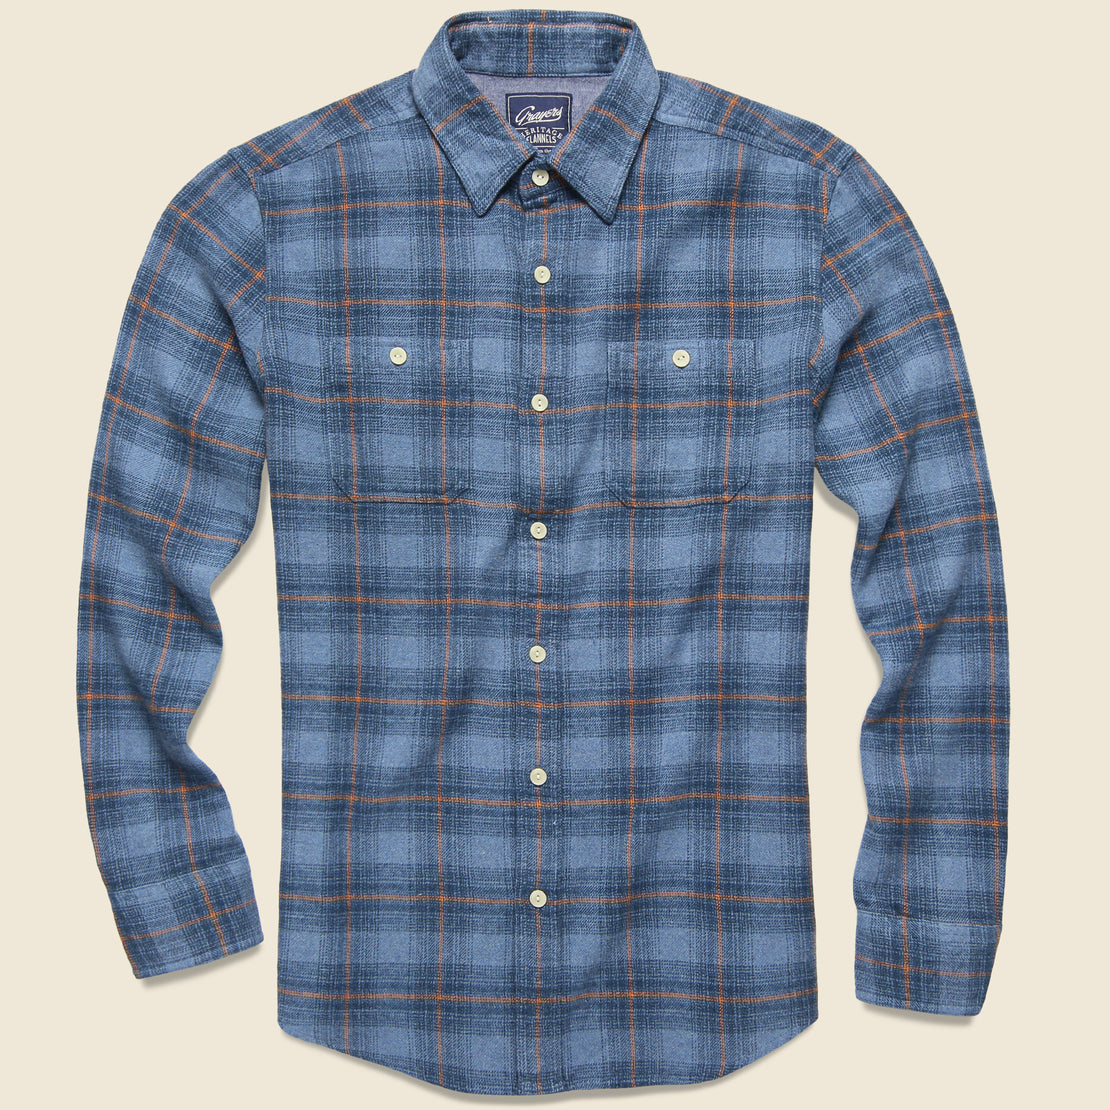 Grayers Nevill Heritage Flannel - Blue/Orange Plaid